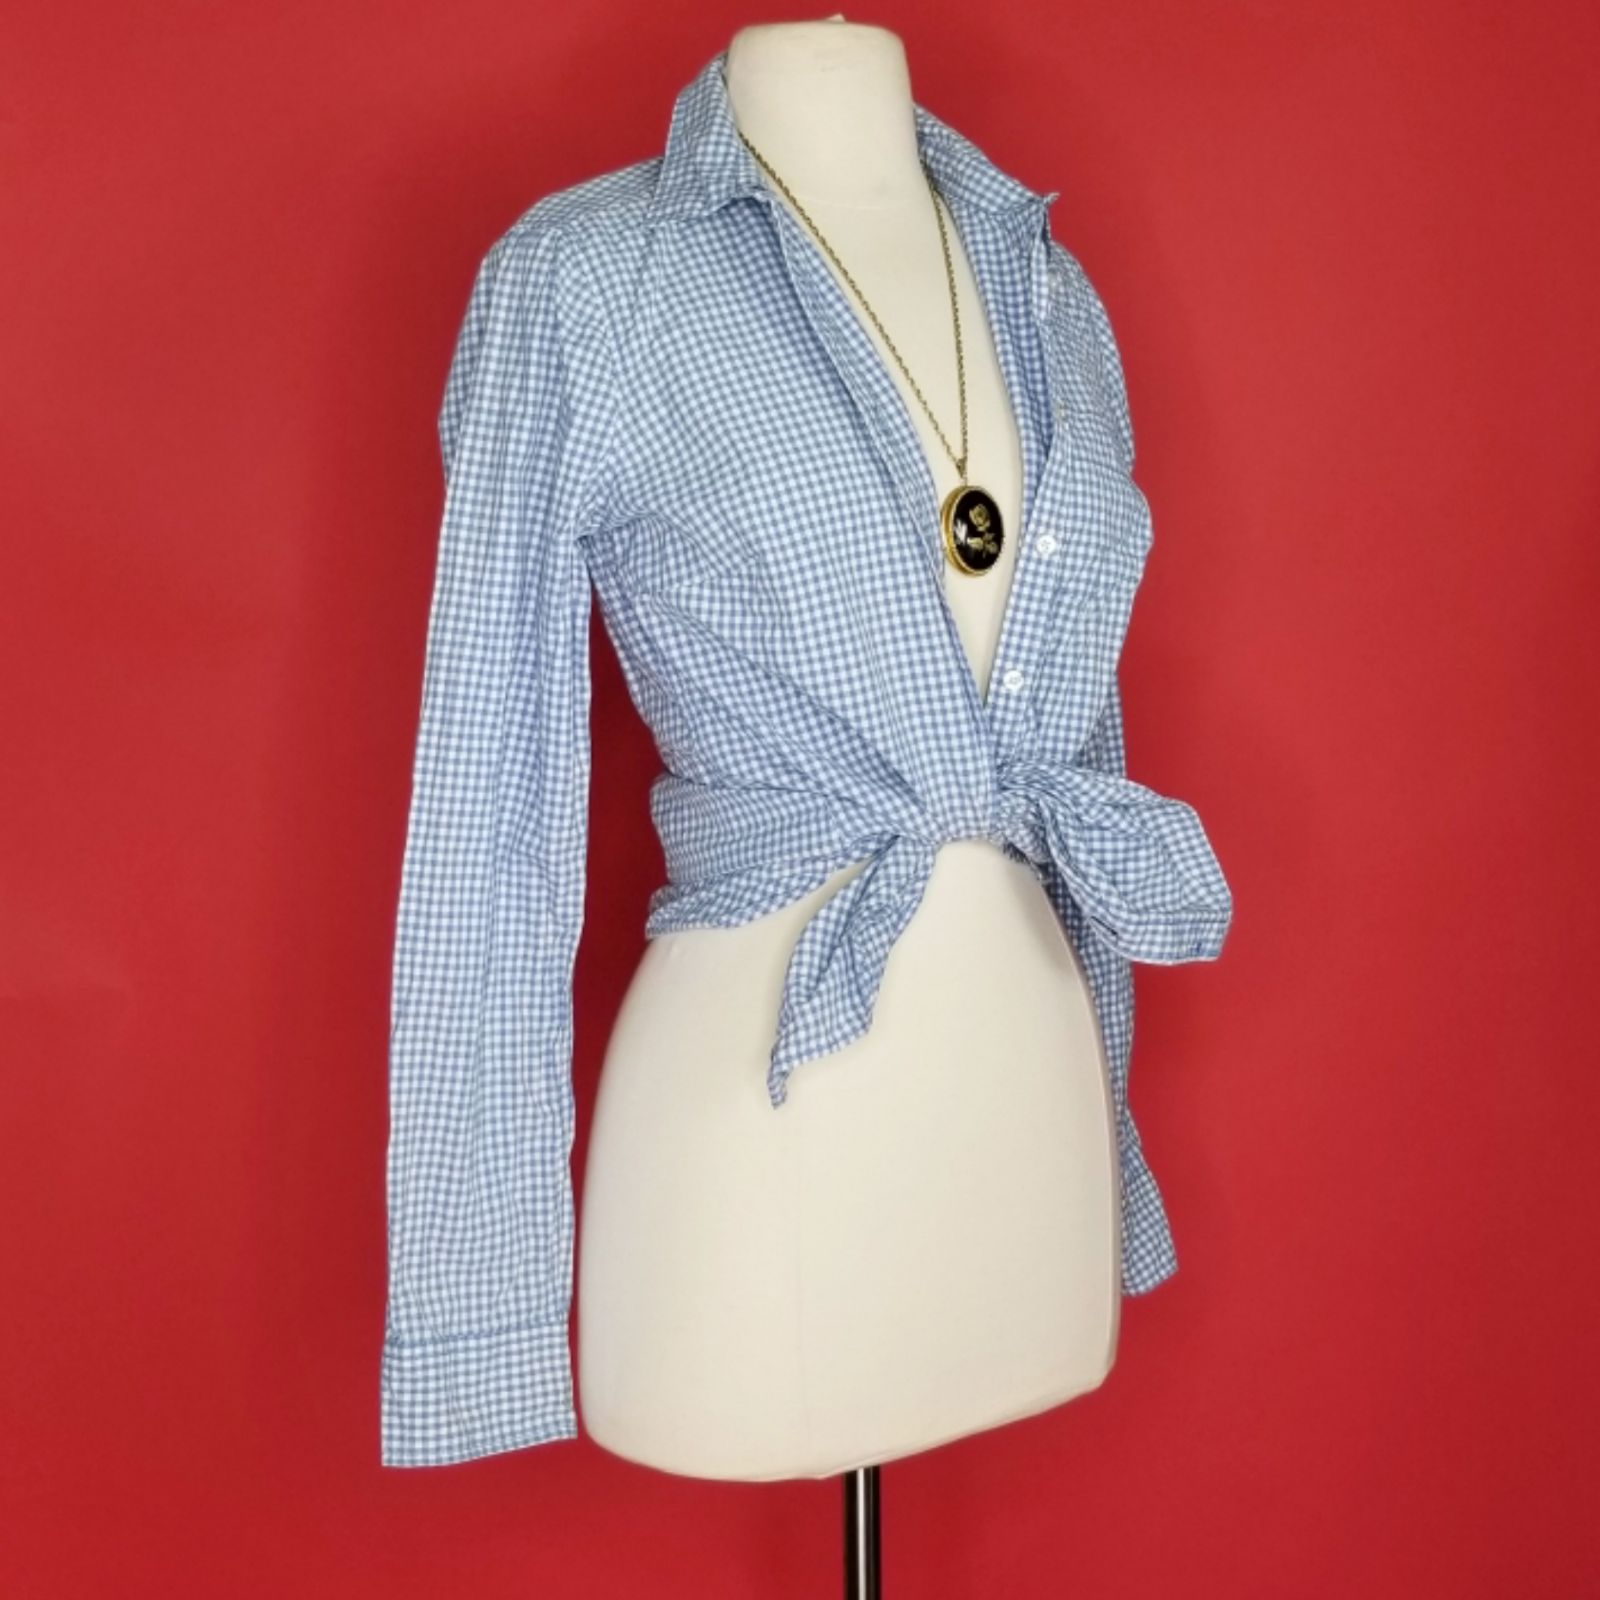 Cute gingham blue & white button up